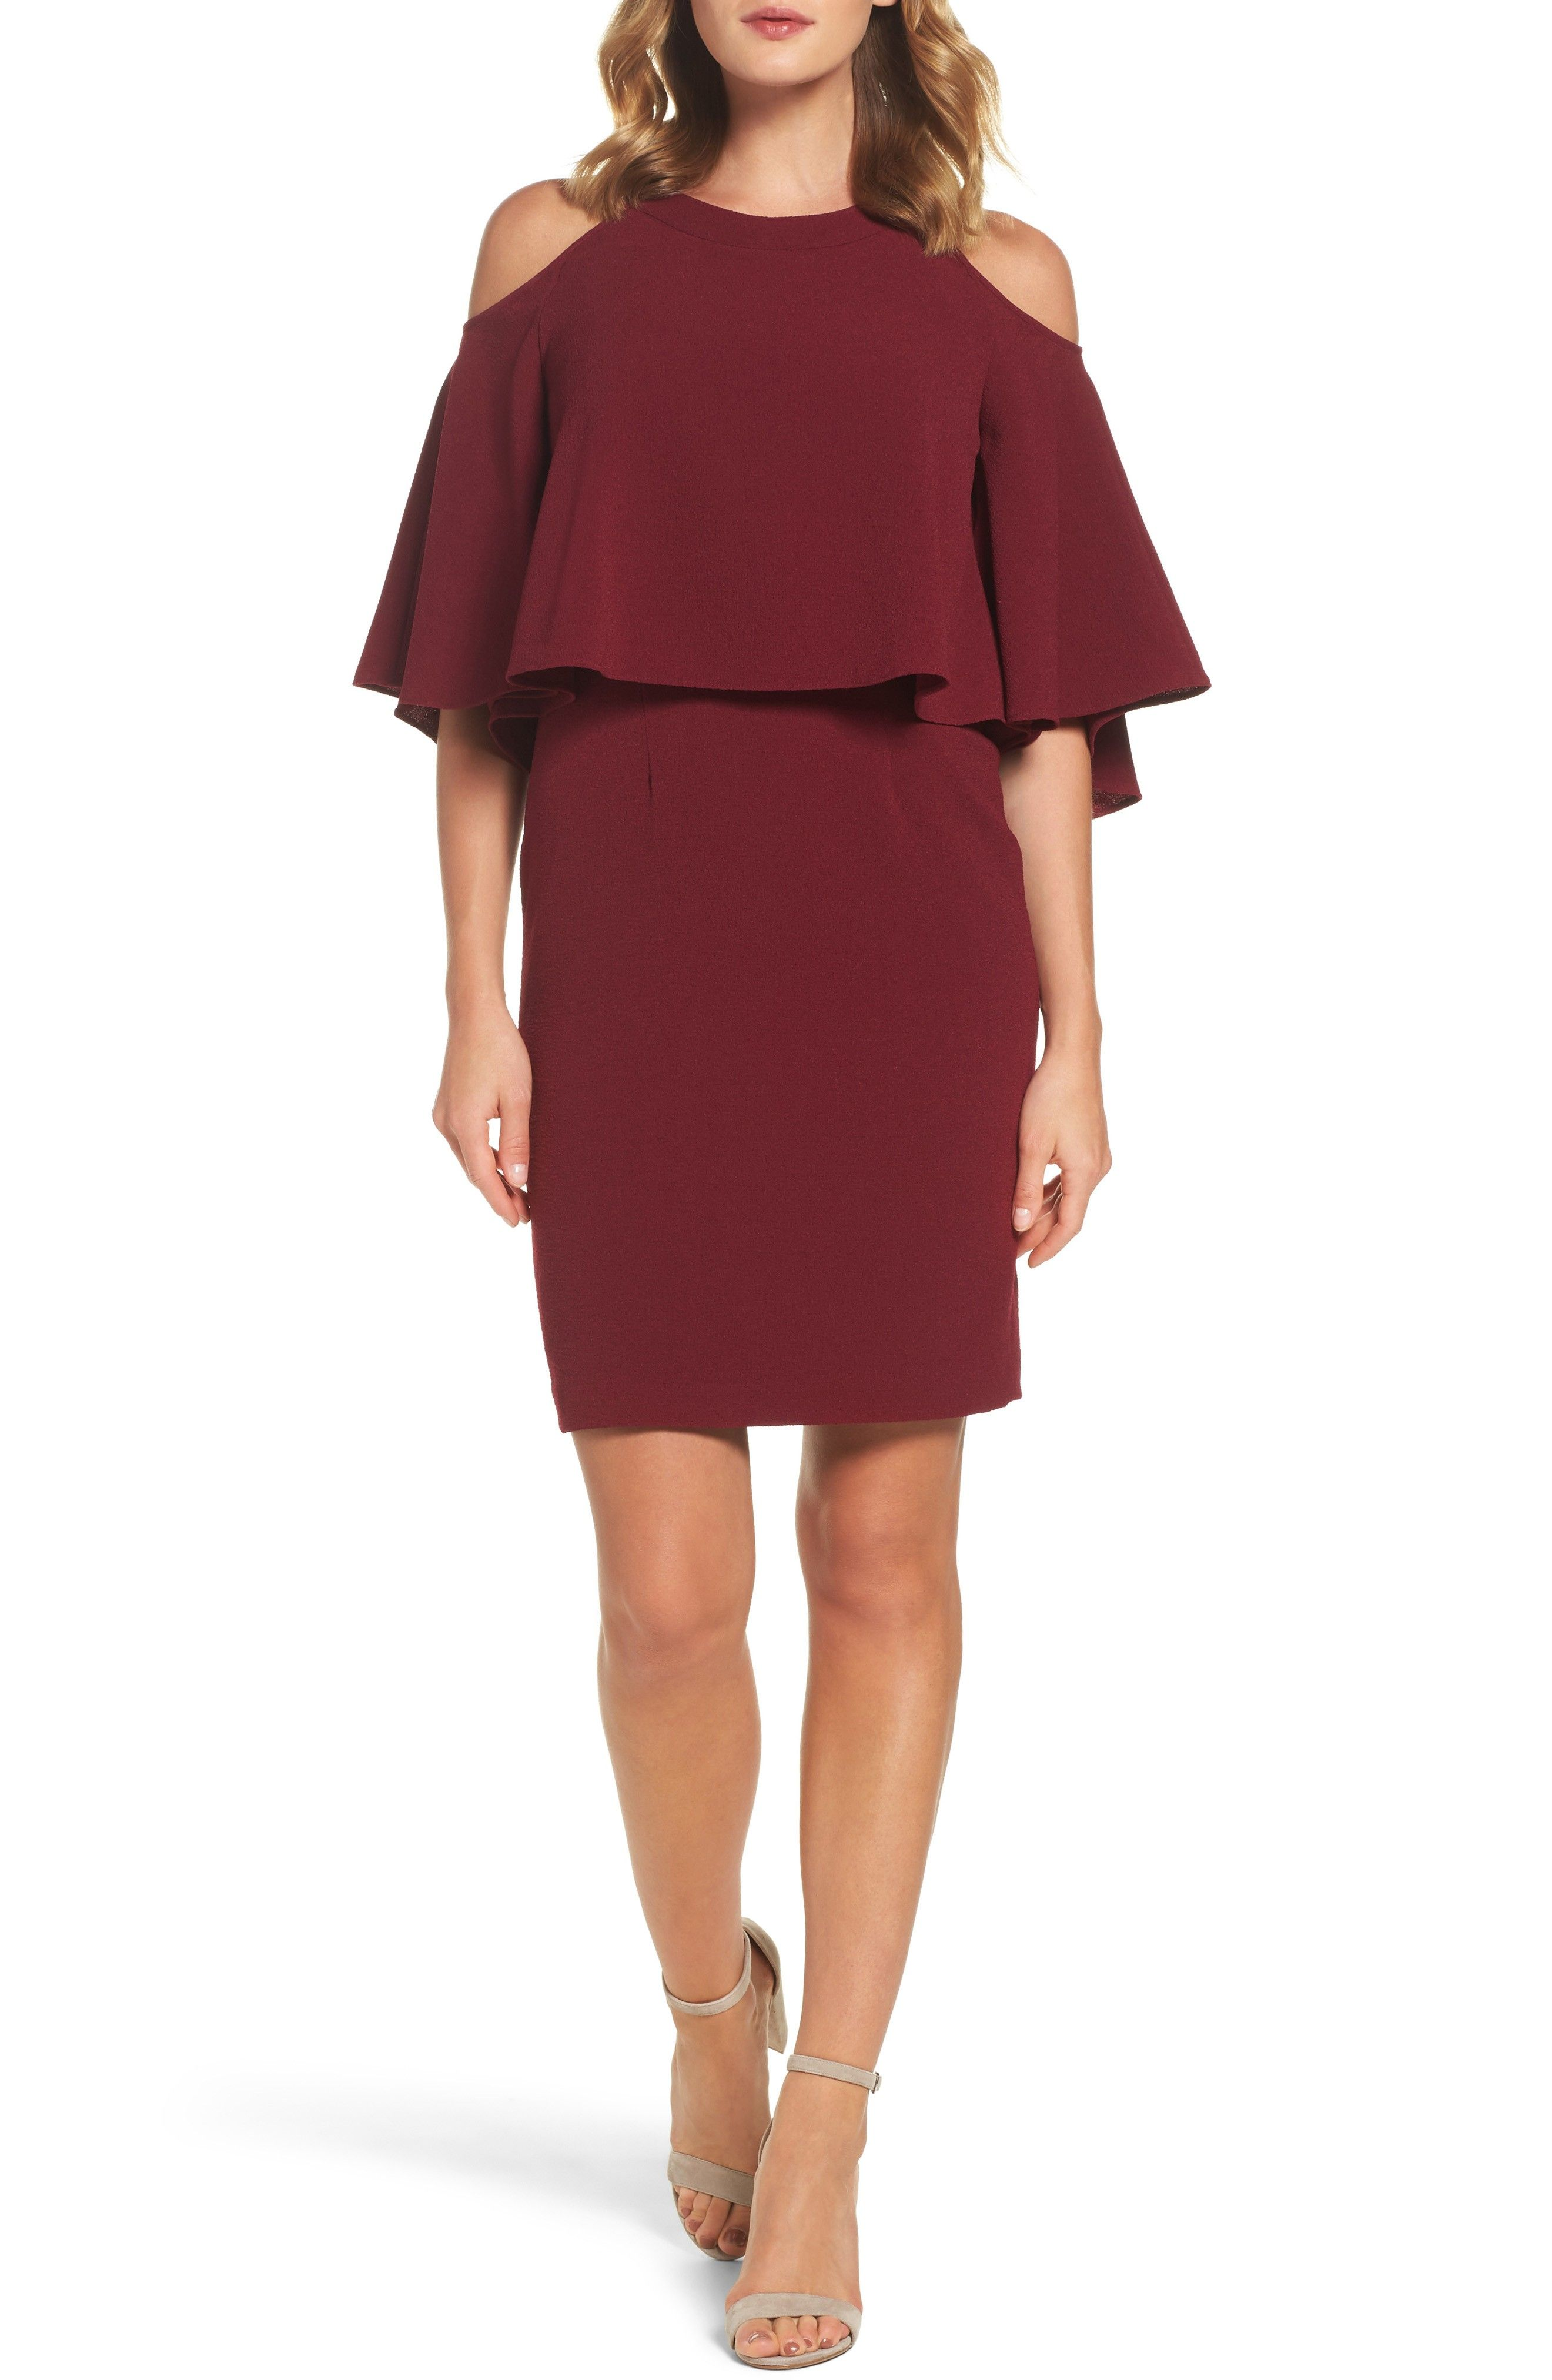 Burgundy Red Cold Shoulder Dress For A Fall Outdoor Casual Wedding Guest Vestidos Cortos Ropa Vestidos De Fiesta